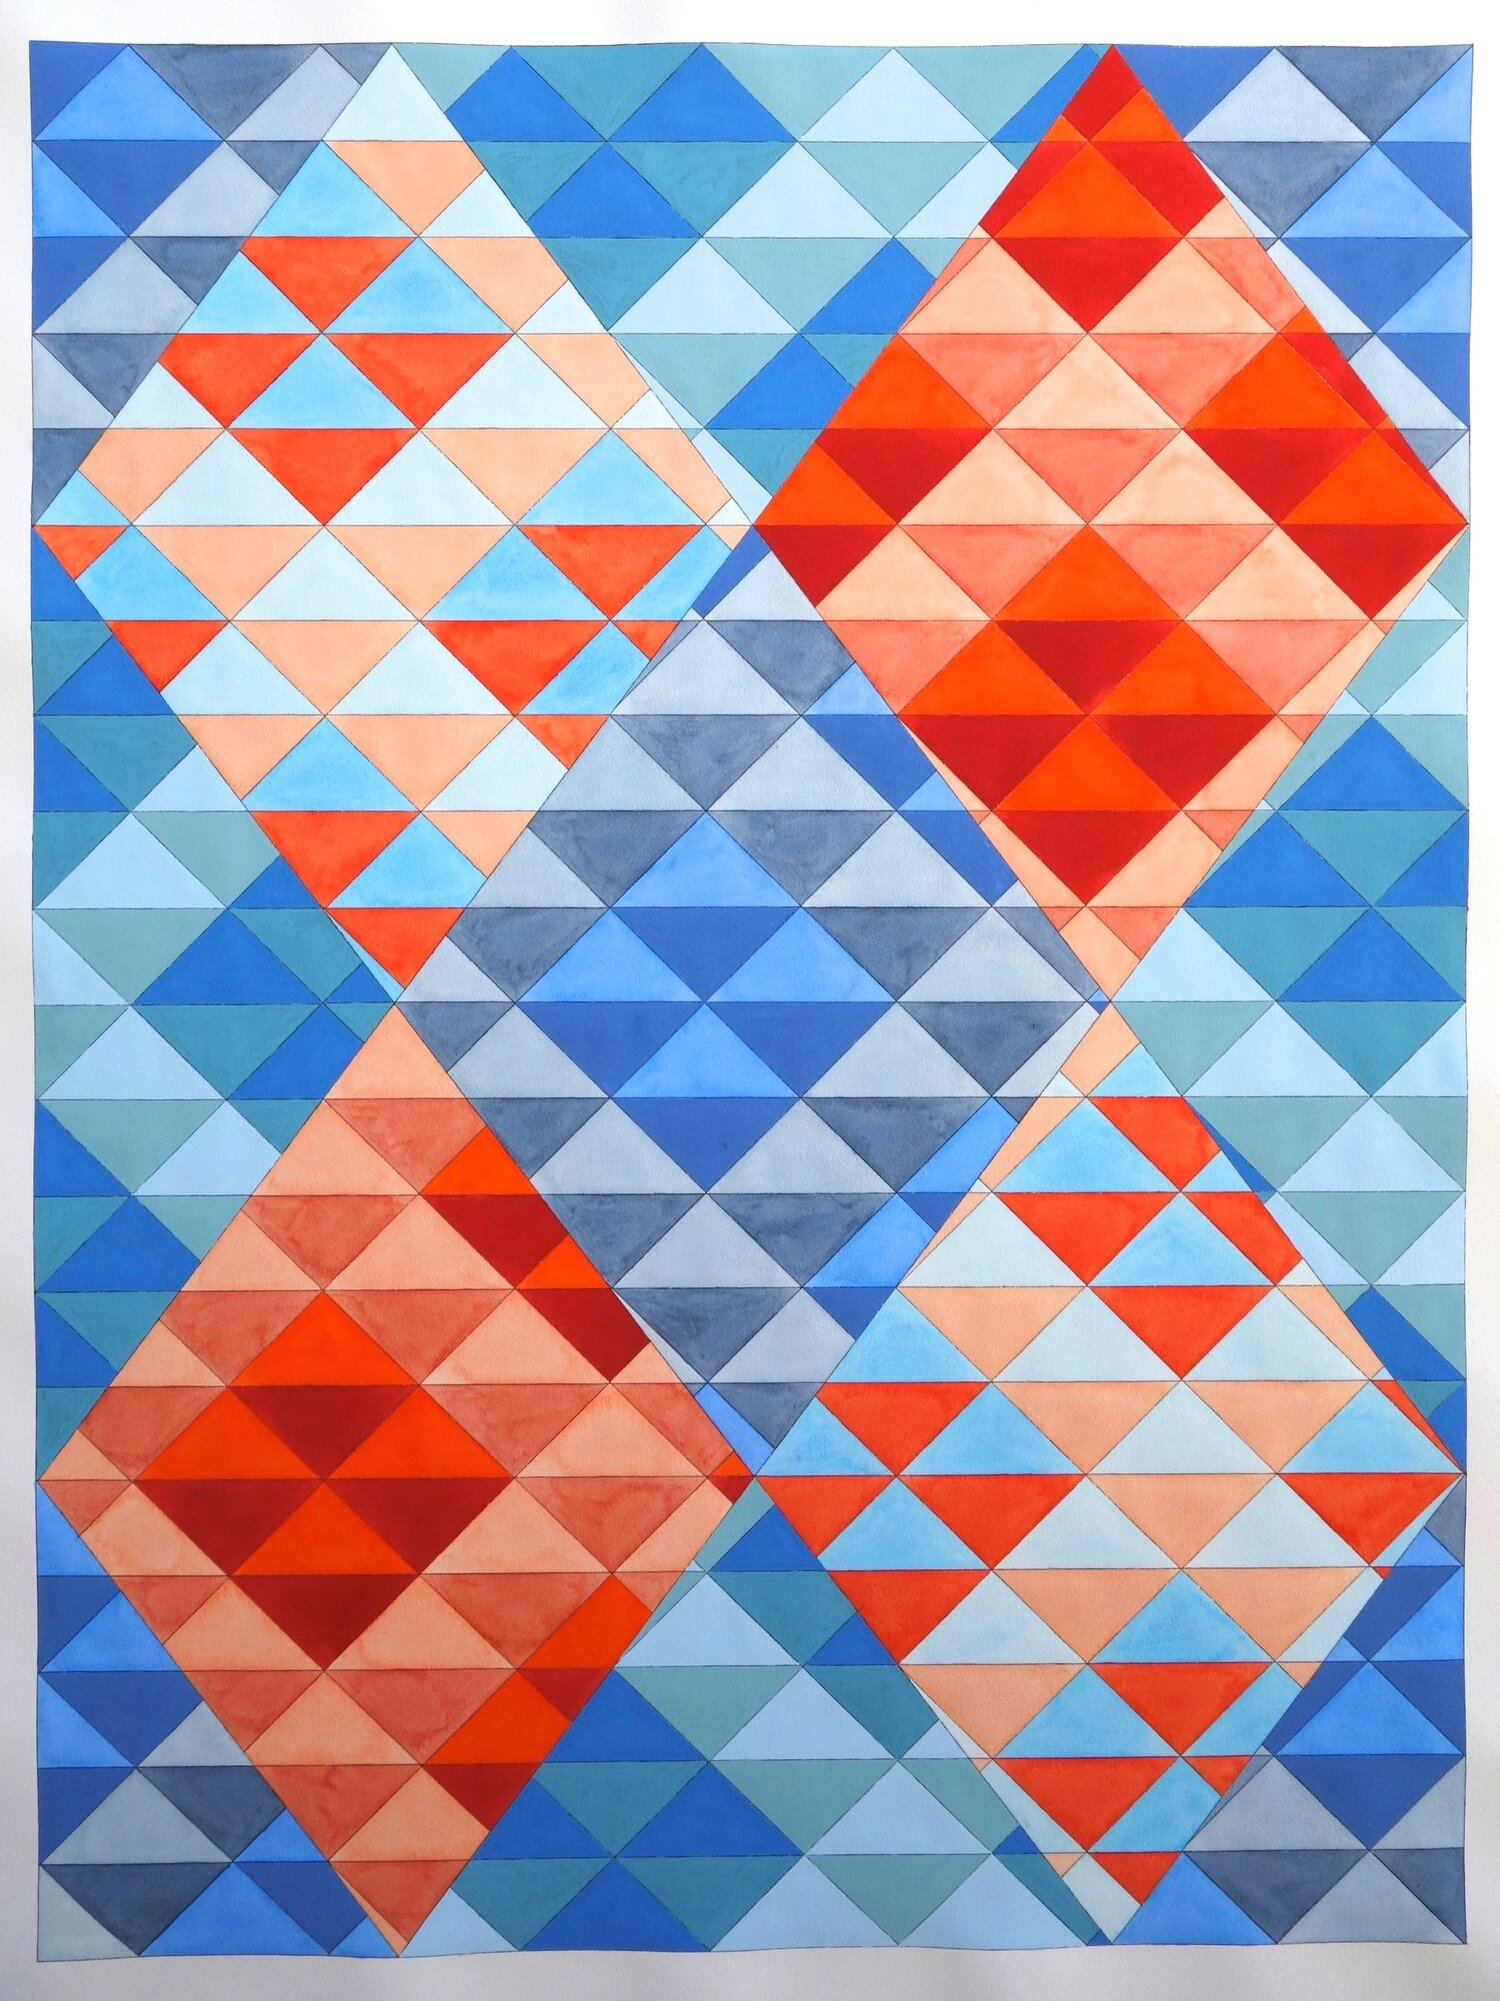 """Ephemeral Triangles No. 23 in Blue and Red. 2018. Watercolor and Gouache on Paper. 48""""x36"""" (Commissioned by Kinzelman Fine Art)"""